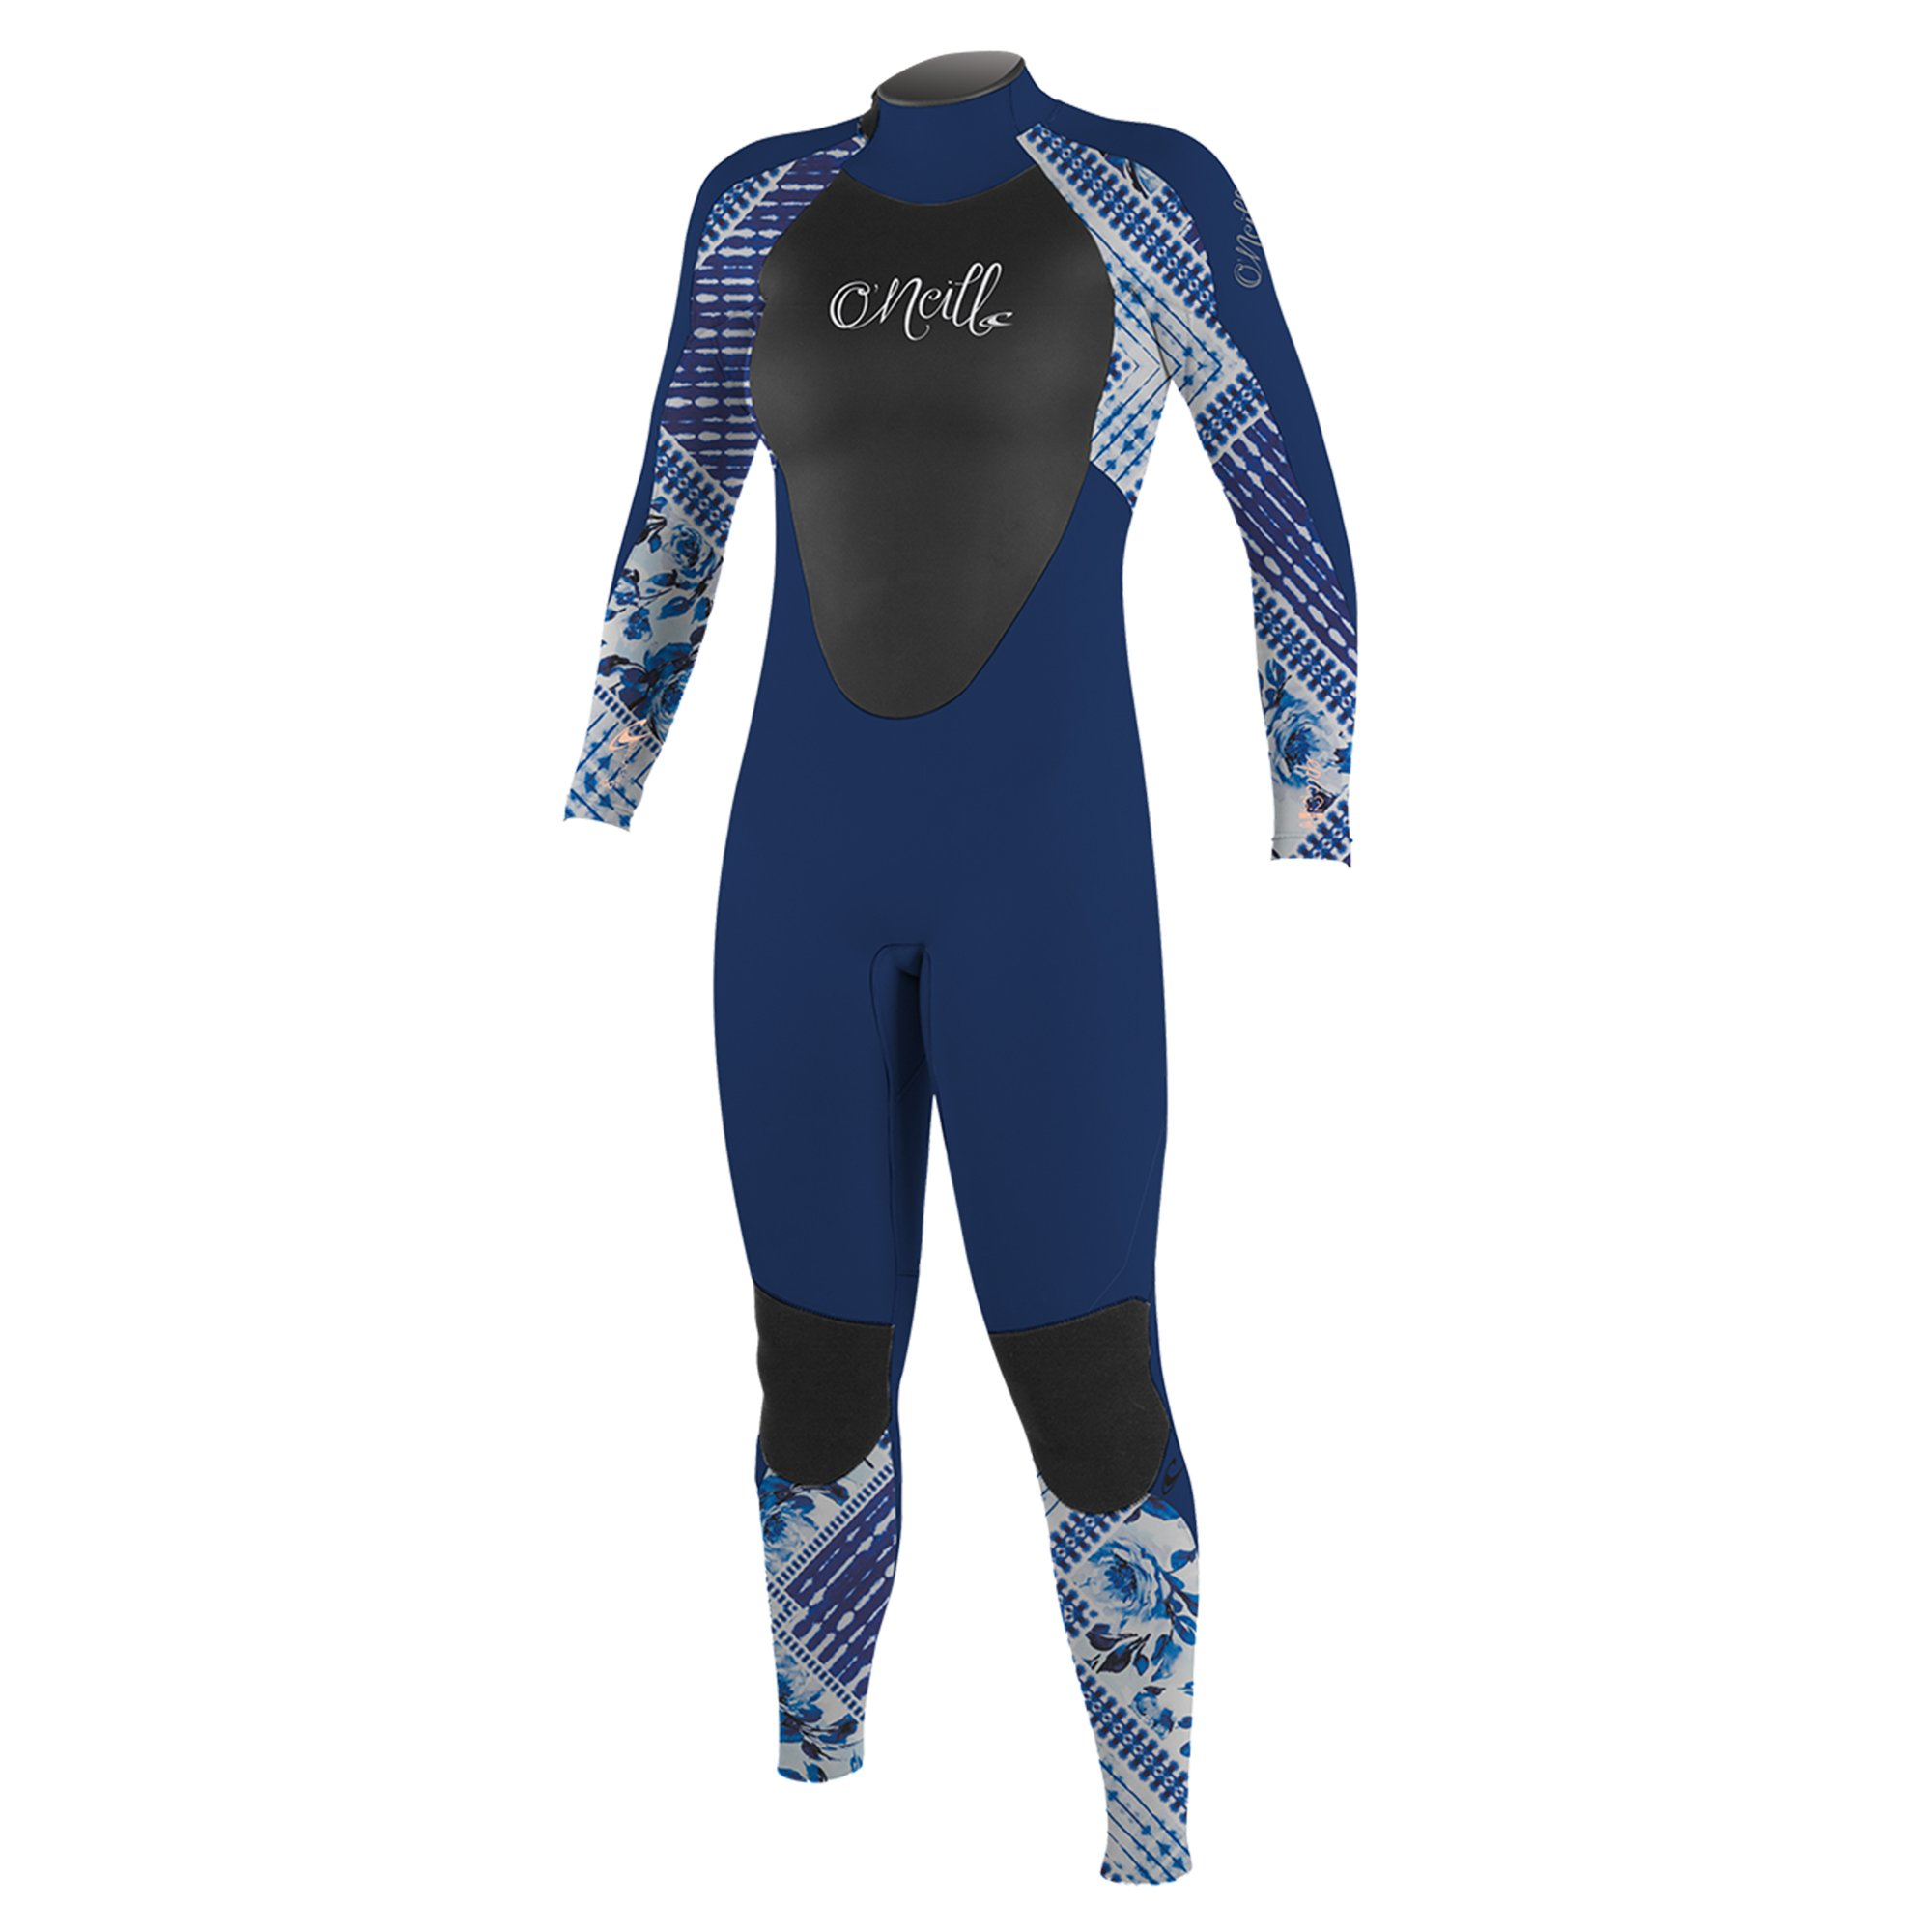 O'Neill Youth Epic 3/2mm Back Zip Full Wetsuit, Navy/IndPatch/Navy, 4